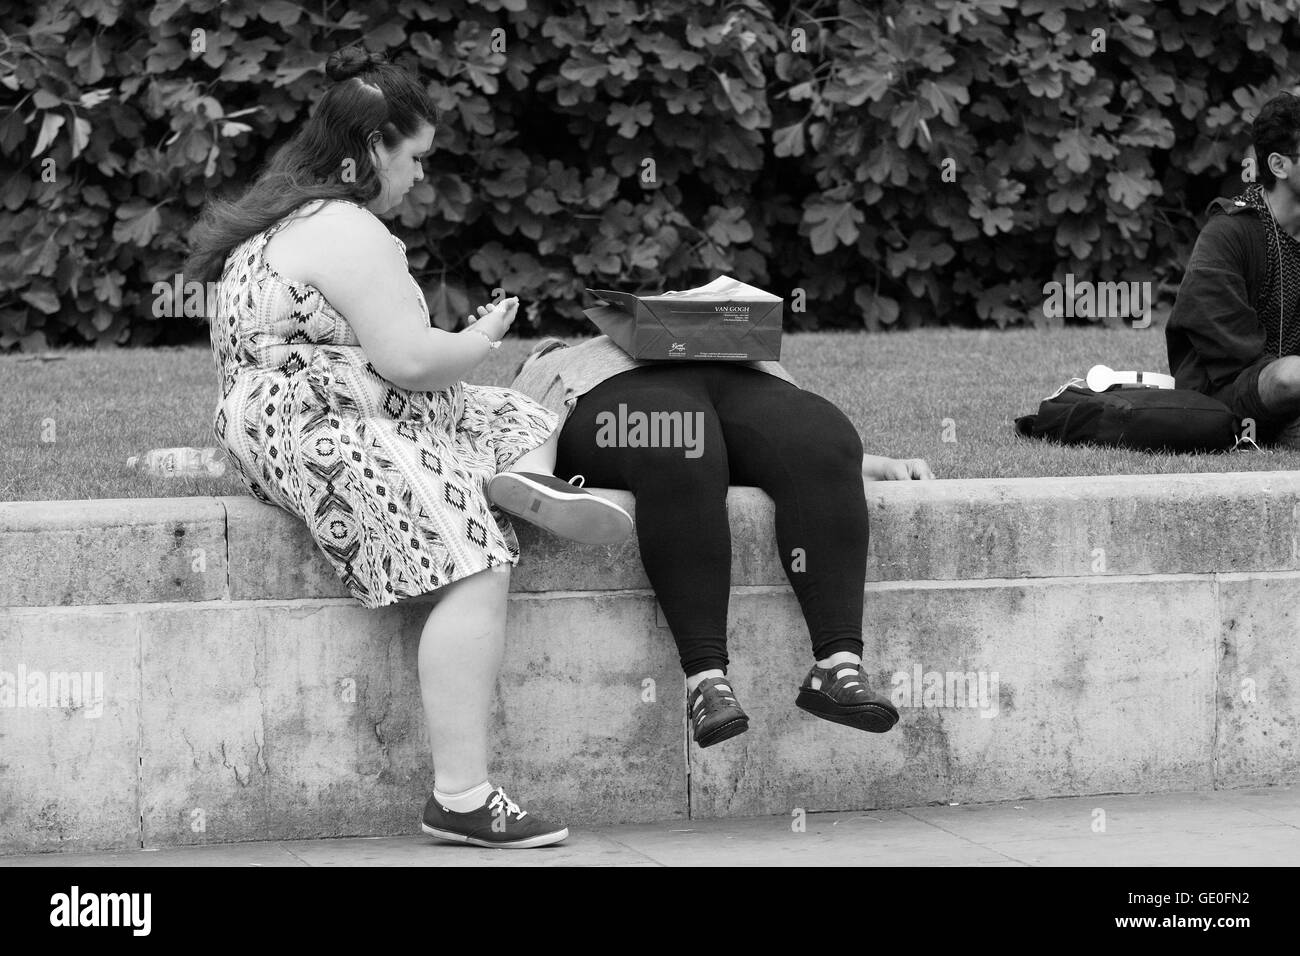 Two women relax in Trafalgar Square, London, England. One looking at her mobile device, a shopping bag resting on - Stock Image